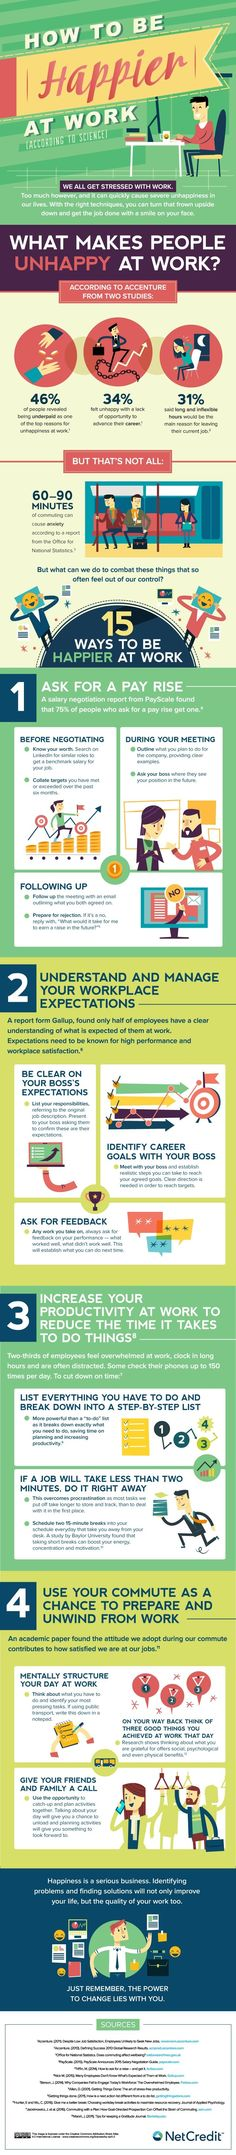 4 Science-Backed Tips to Be Happier at Work - #Infographic